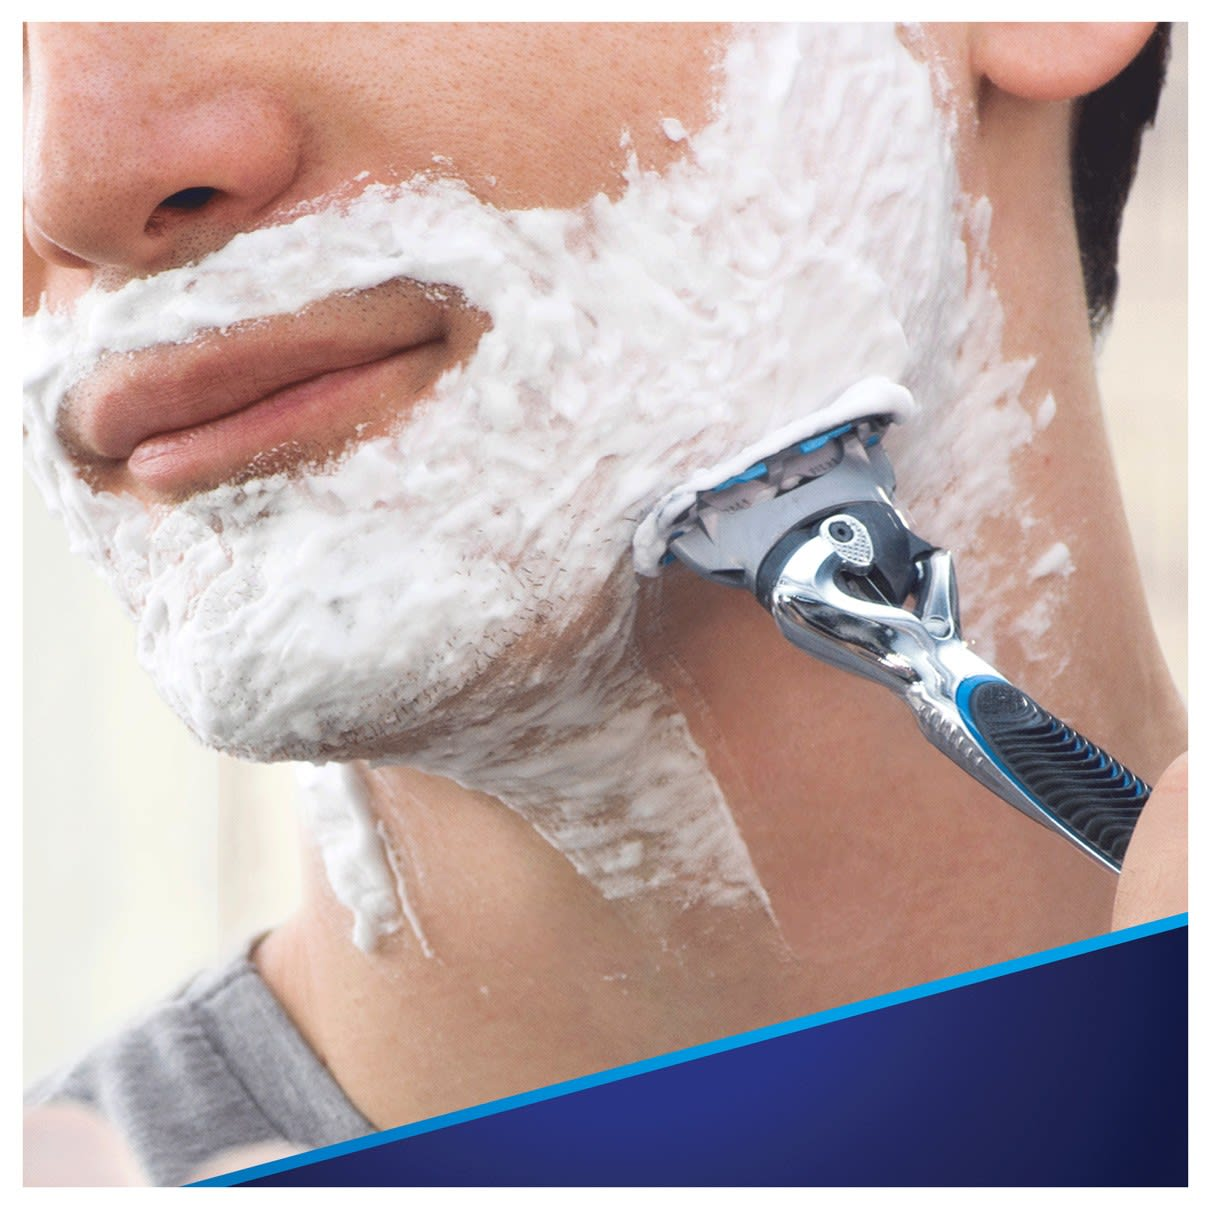 6. shields & cools while you shave